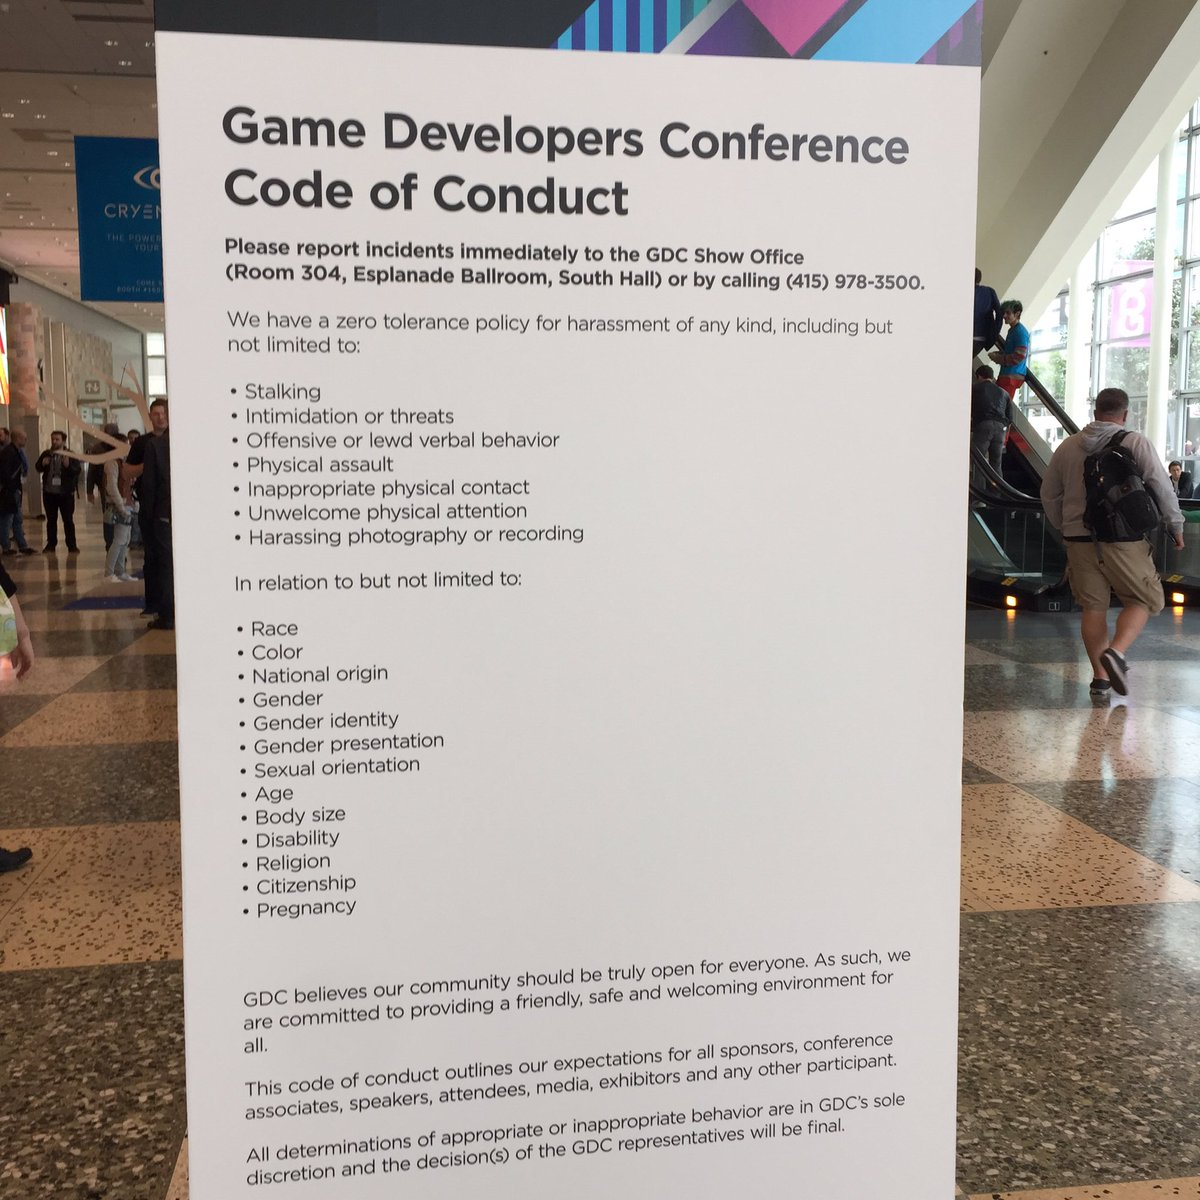 """Dear whoever told a person I know that she should """"give up her place in line so a real developer can get a seat"""": https://t.co/NcBuQnFokp"""